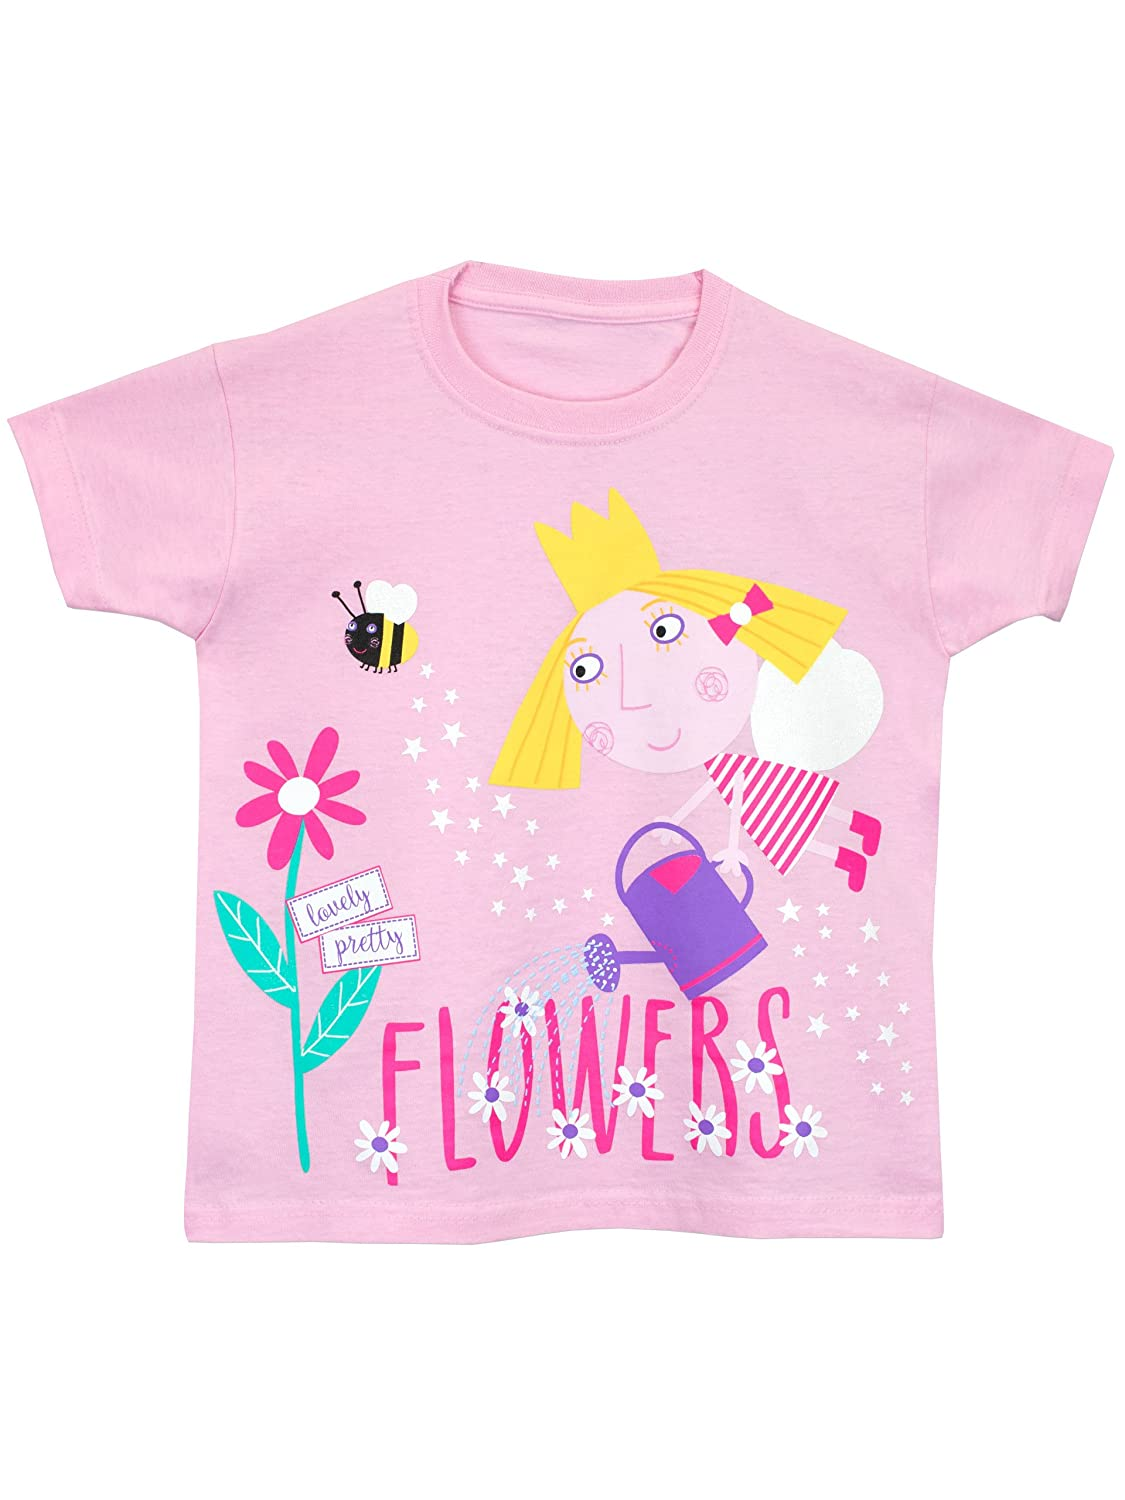 Ben & Holly Girls Ben and Holly T-Shirt Ages 1 to 6 Years